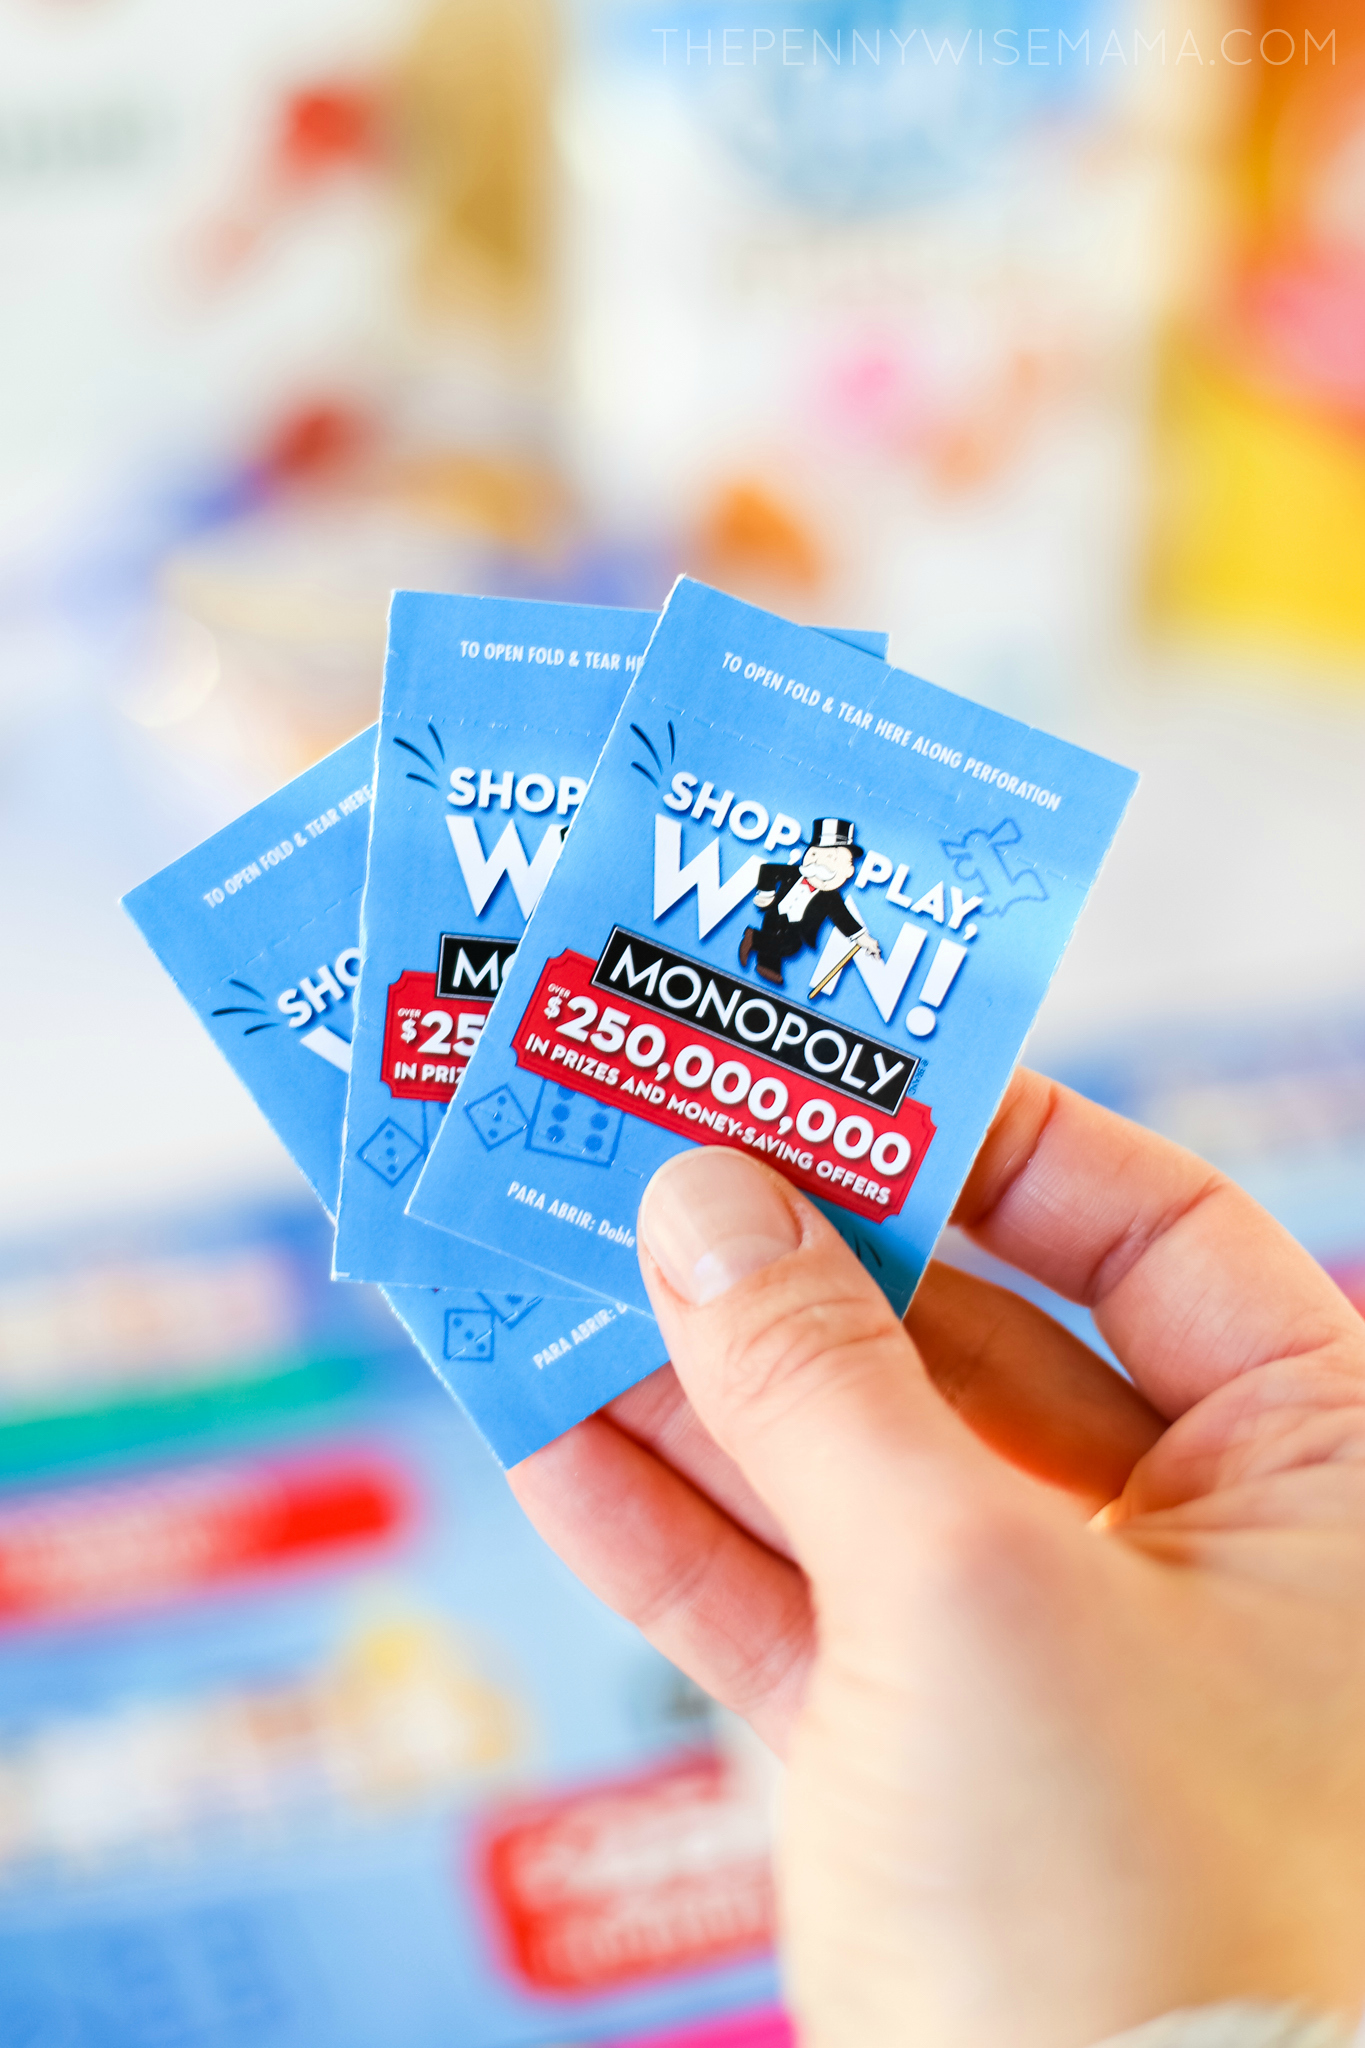 Safeway Monopoly Game Tickets